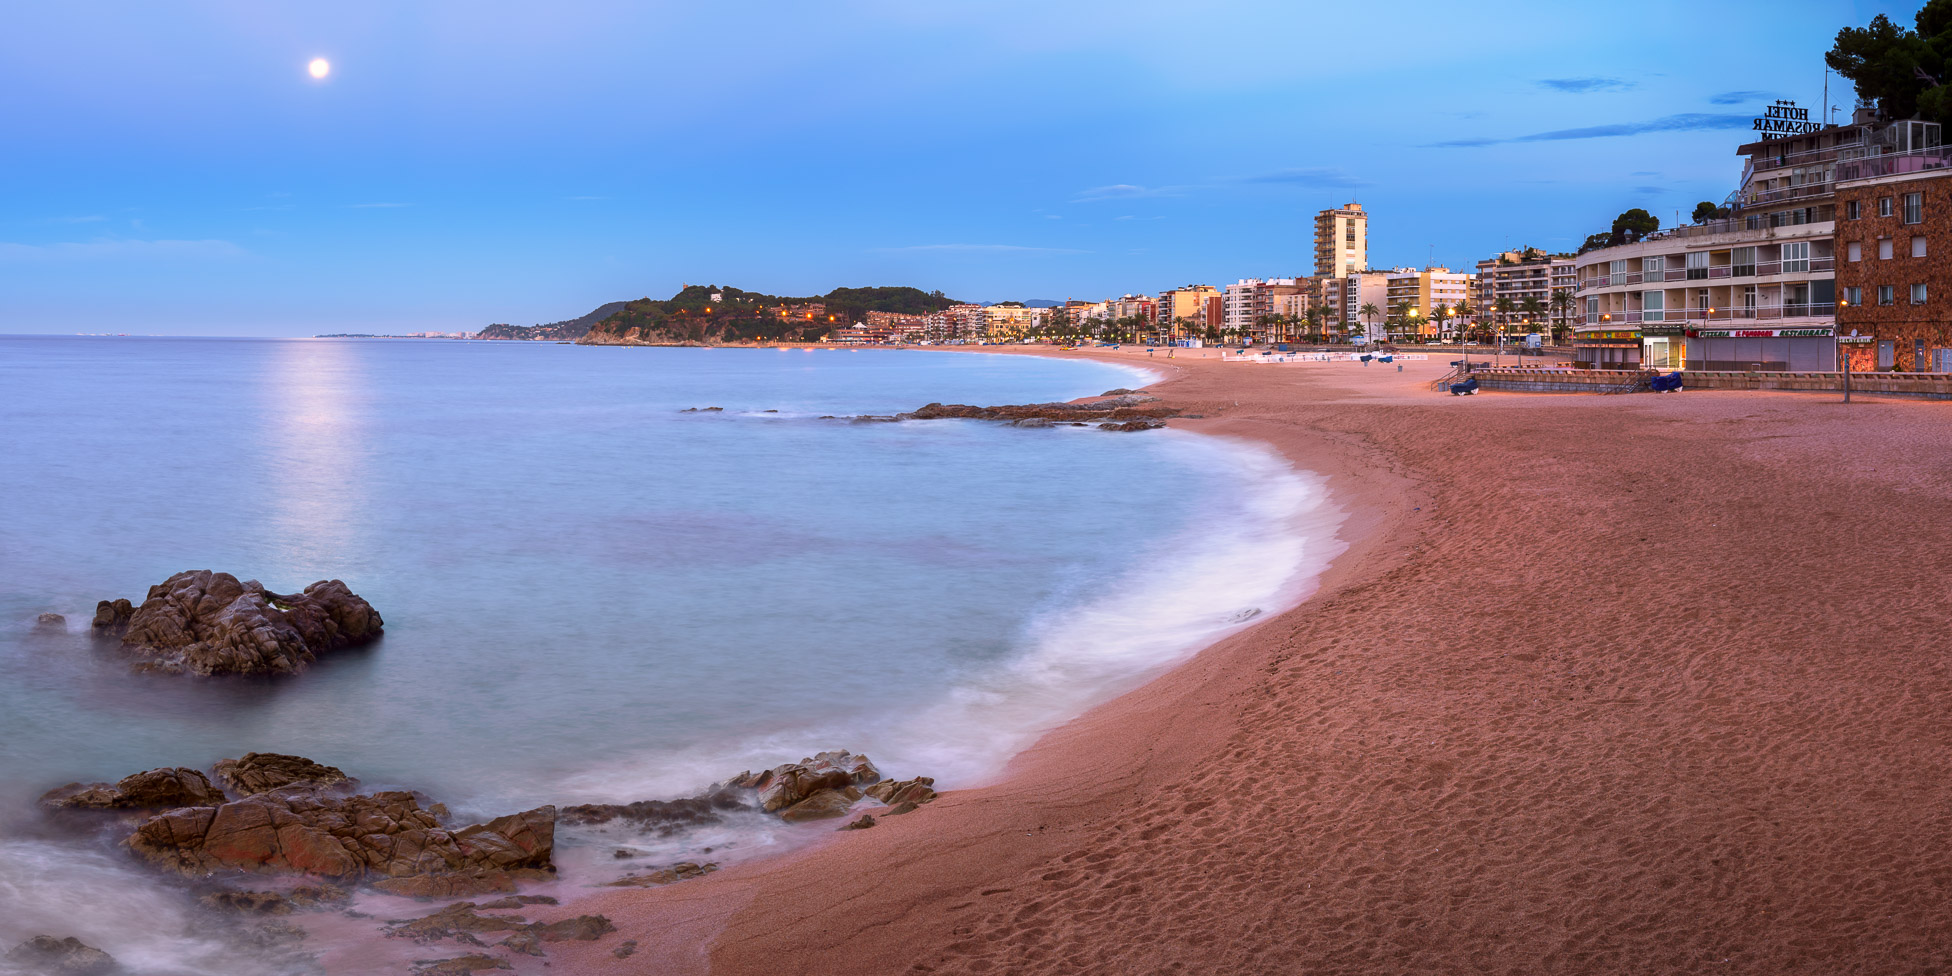 Panorama of Lloret de Mar Seafront in the Evening, Lloret de Mar, Catalonia, Spain